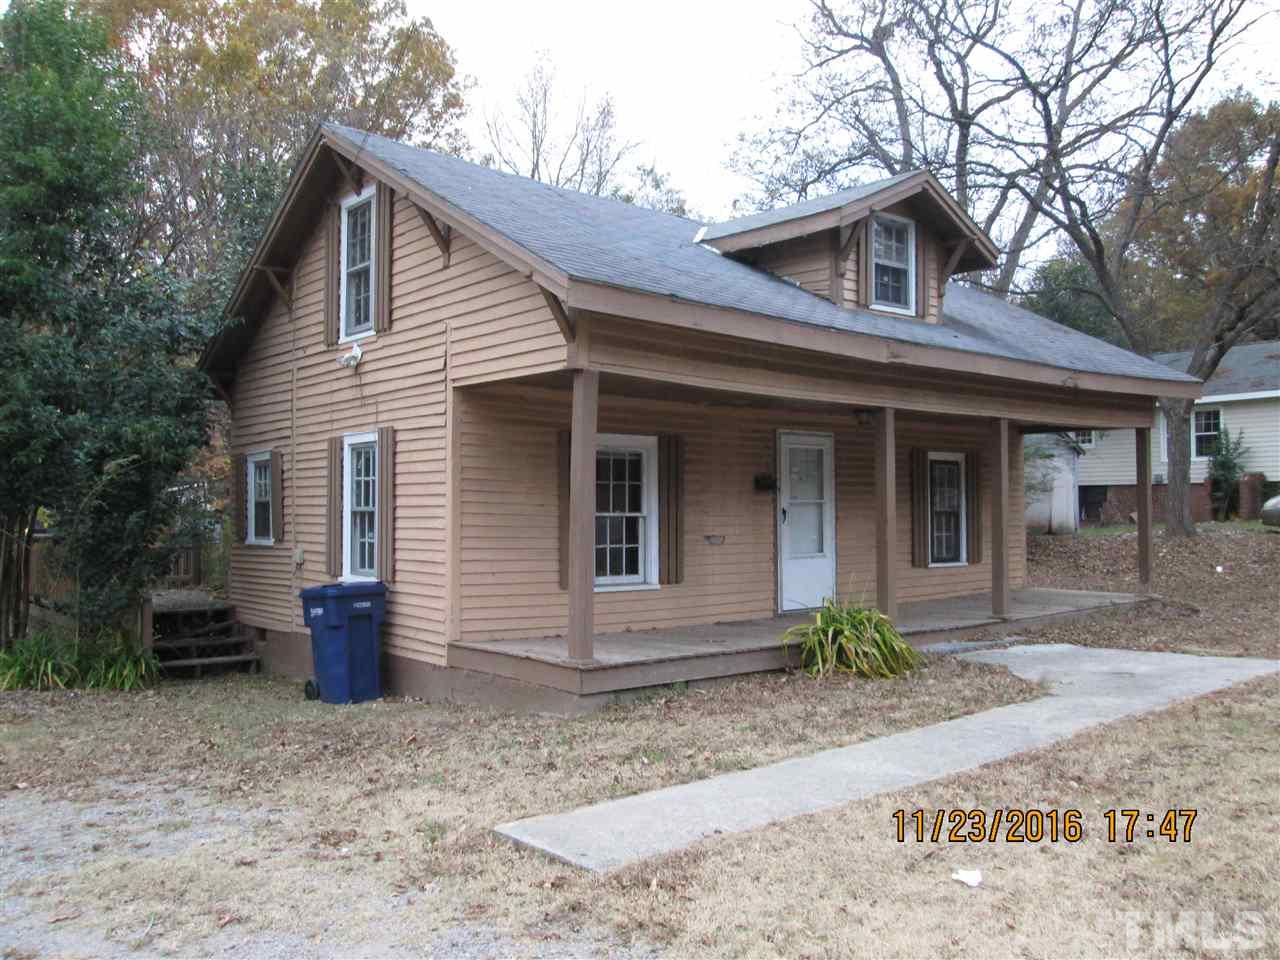 27502 3 Bedroom Home For Sale